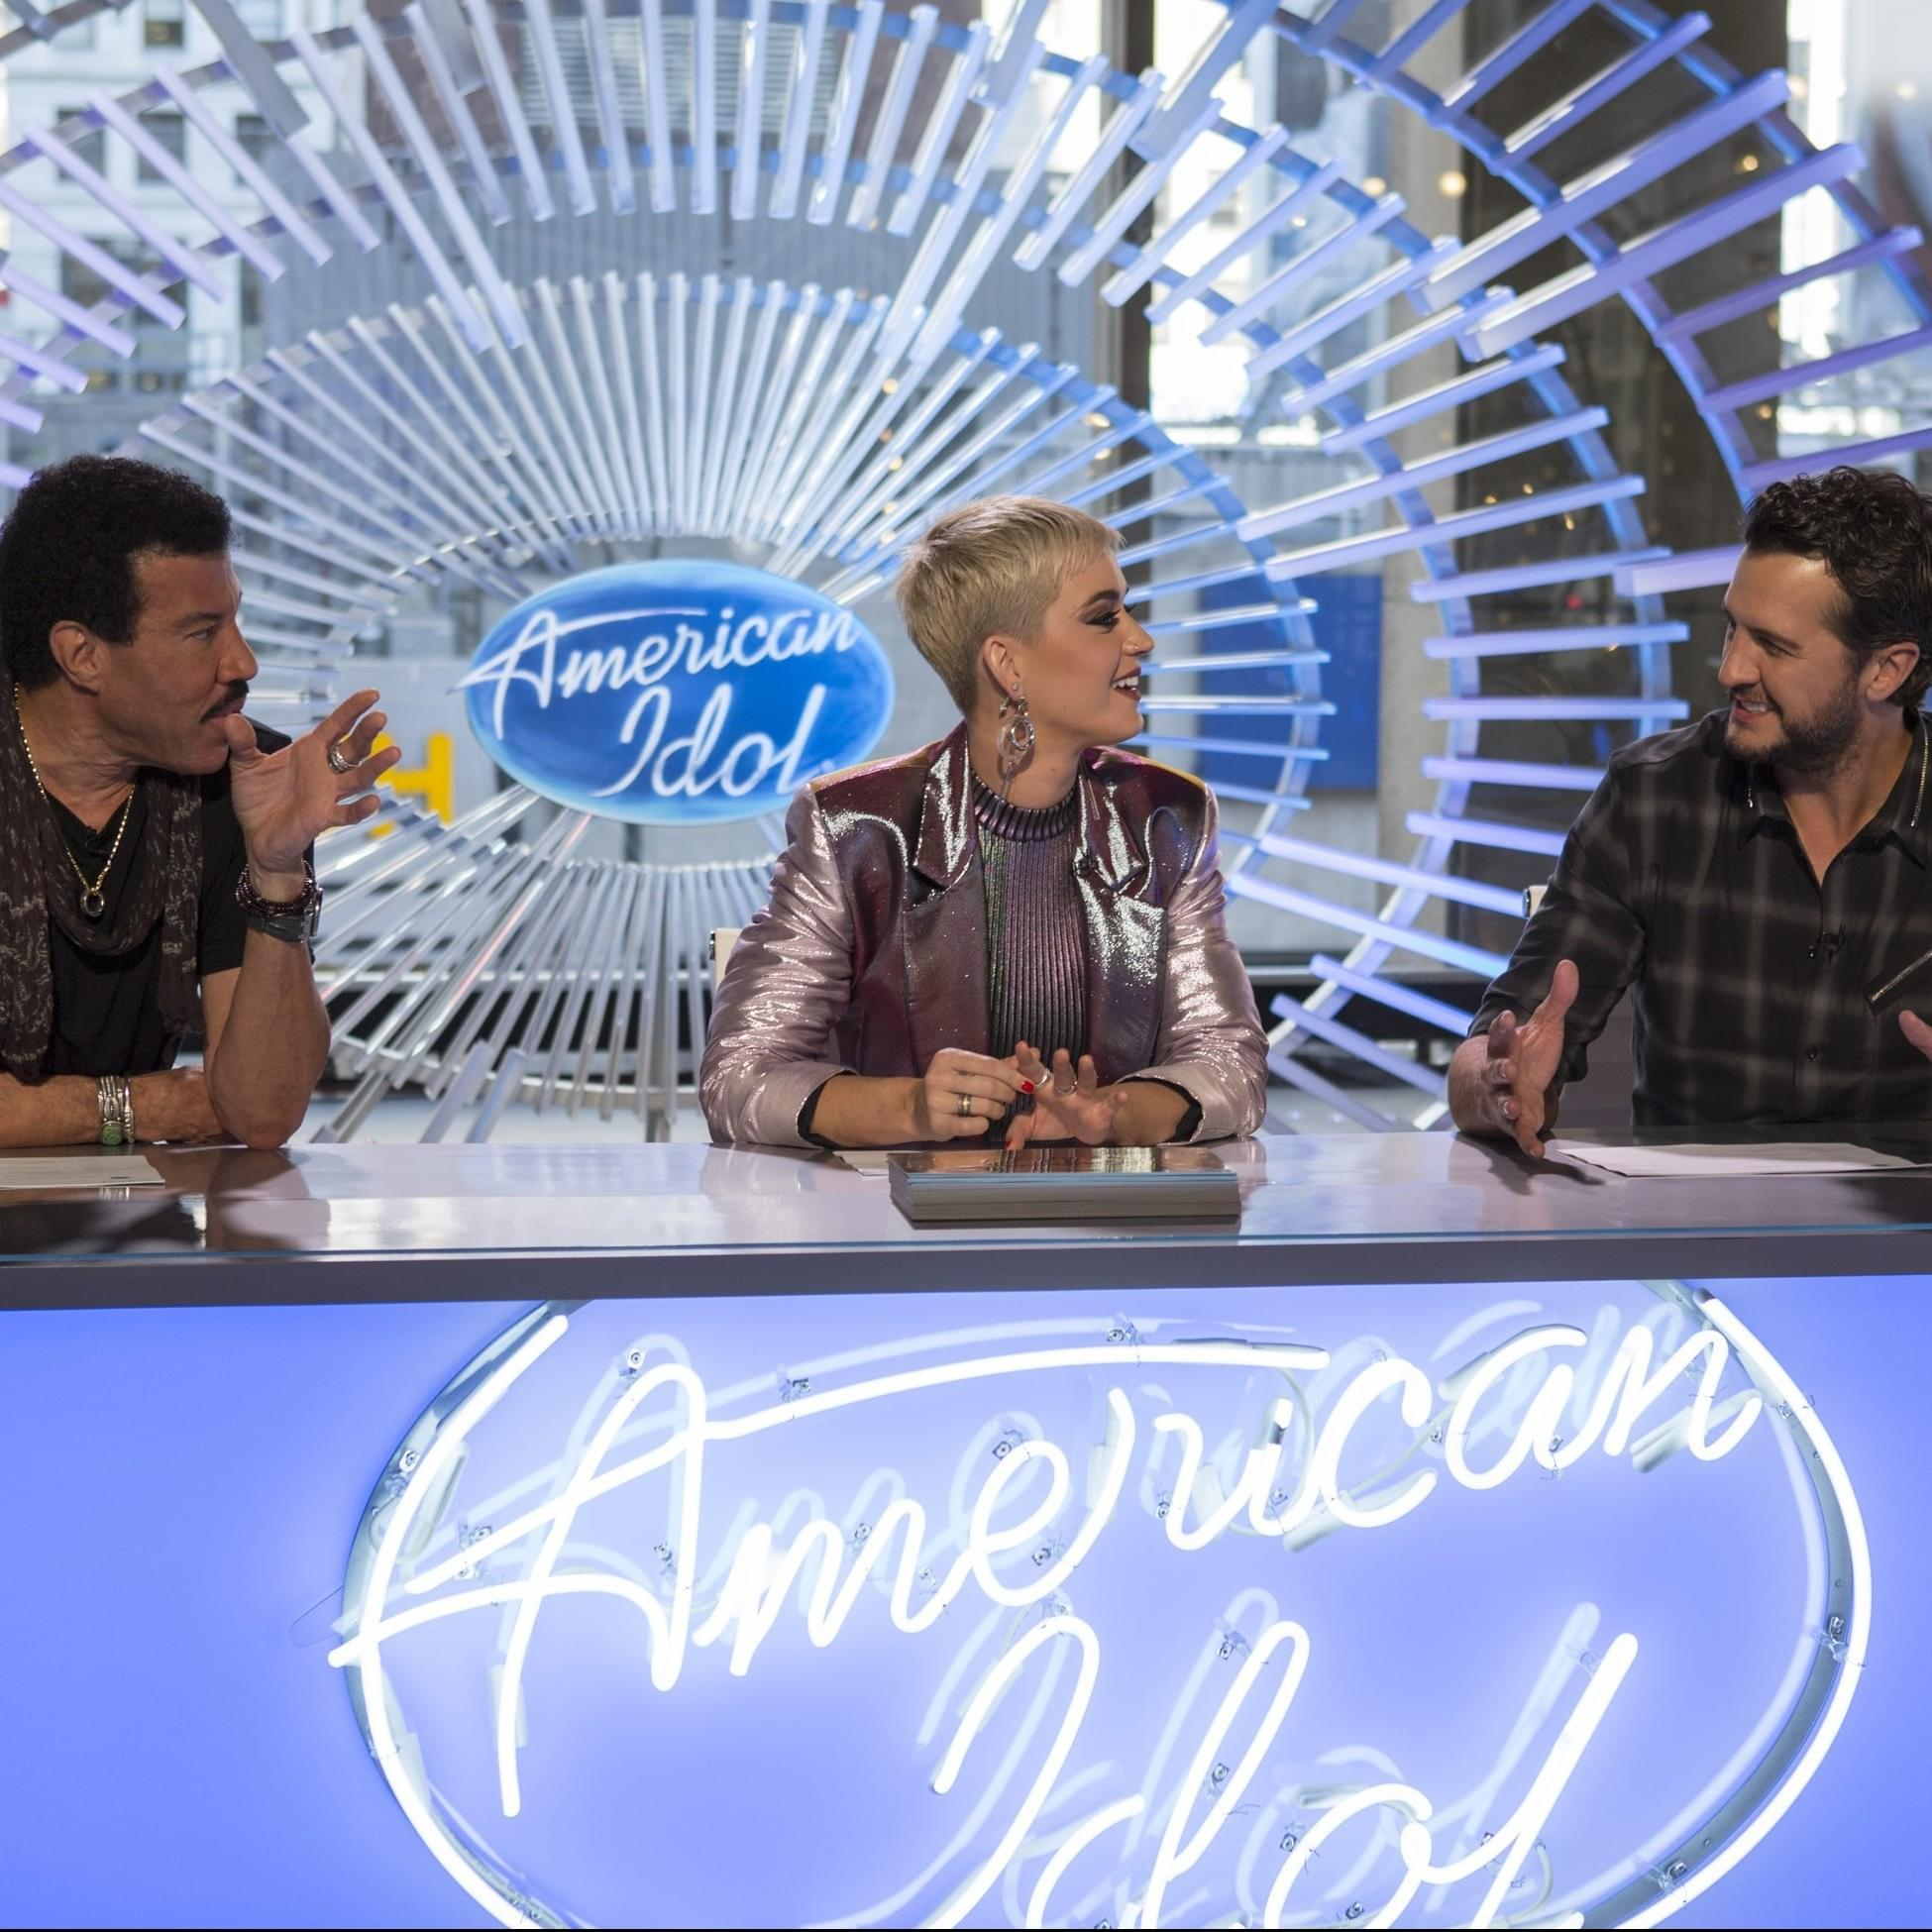 The American Idol is…